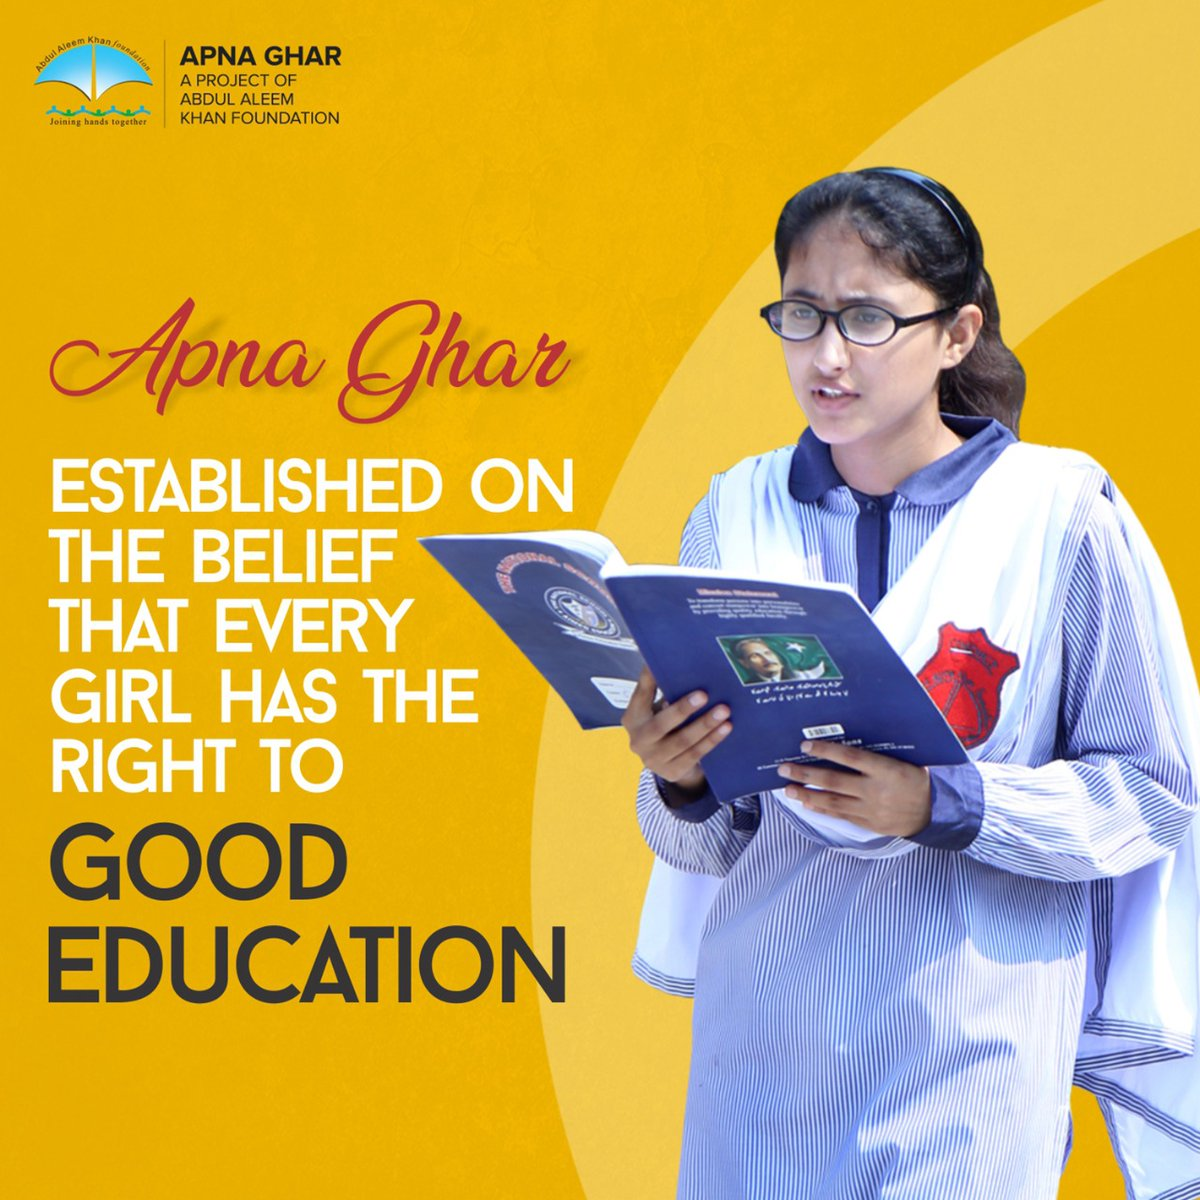 Every daughter has the right to a good education and a happy life. In this regard, the Abdul Aleem Khan Foundation is playing a significant role in providing education and other necessities of life to helpless and needy girls.  #AAK_Foundation  #ApnaGhar